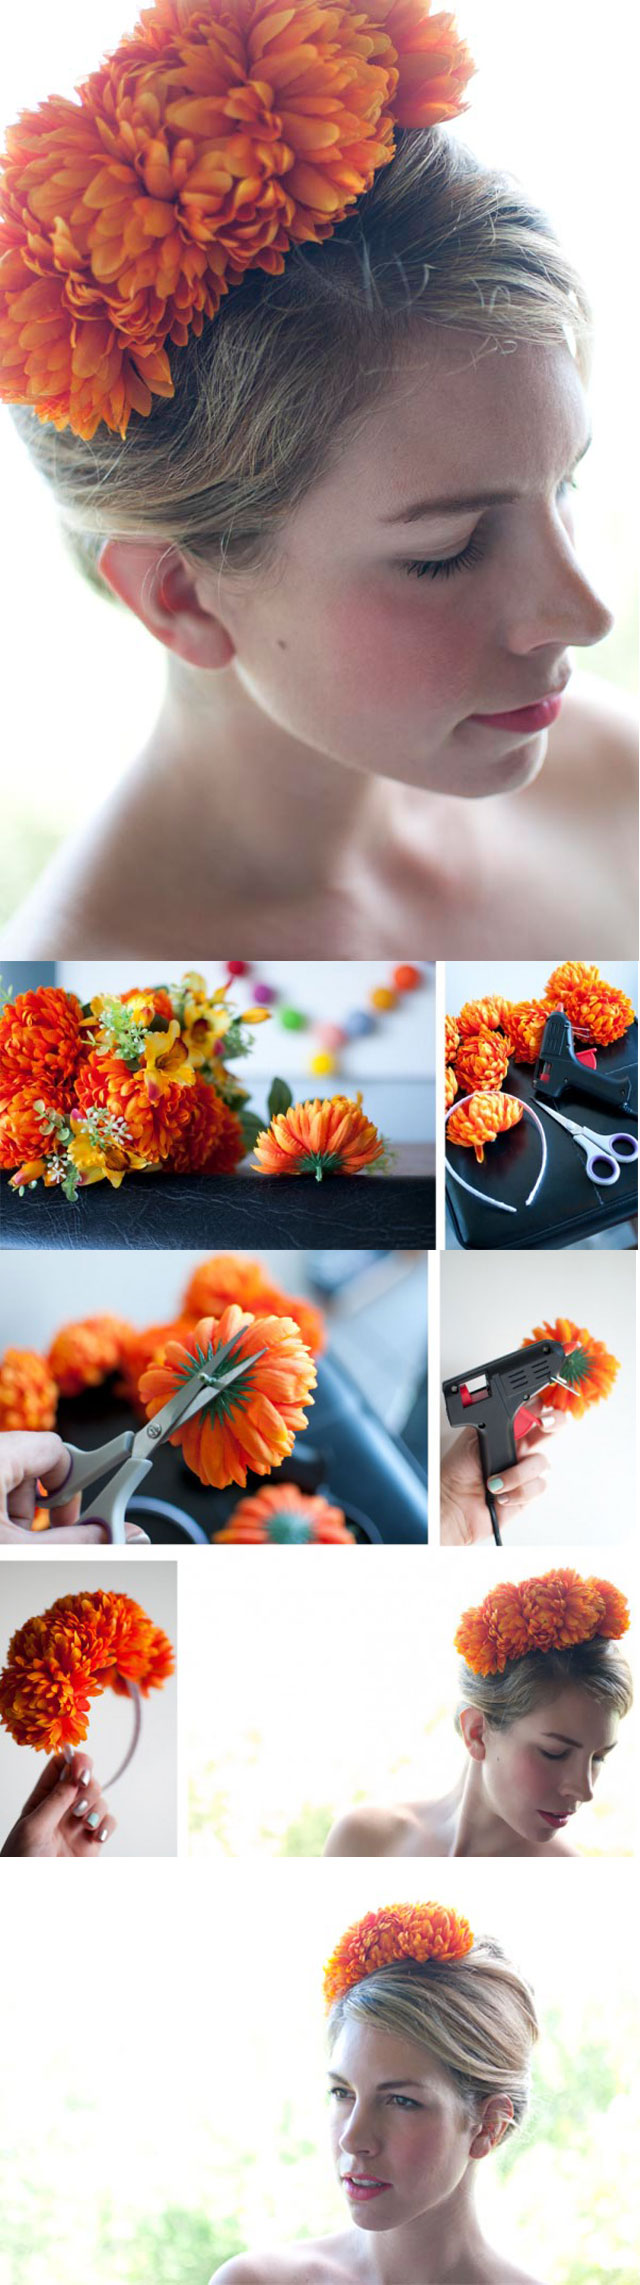 Floral Accessories (1)